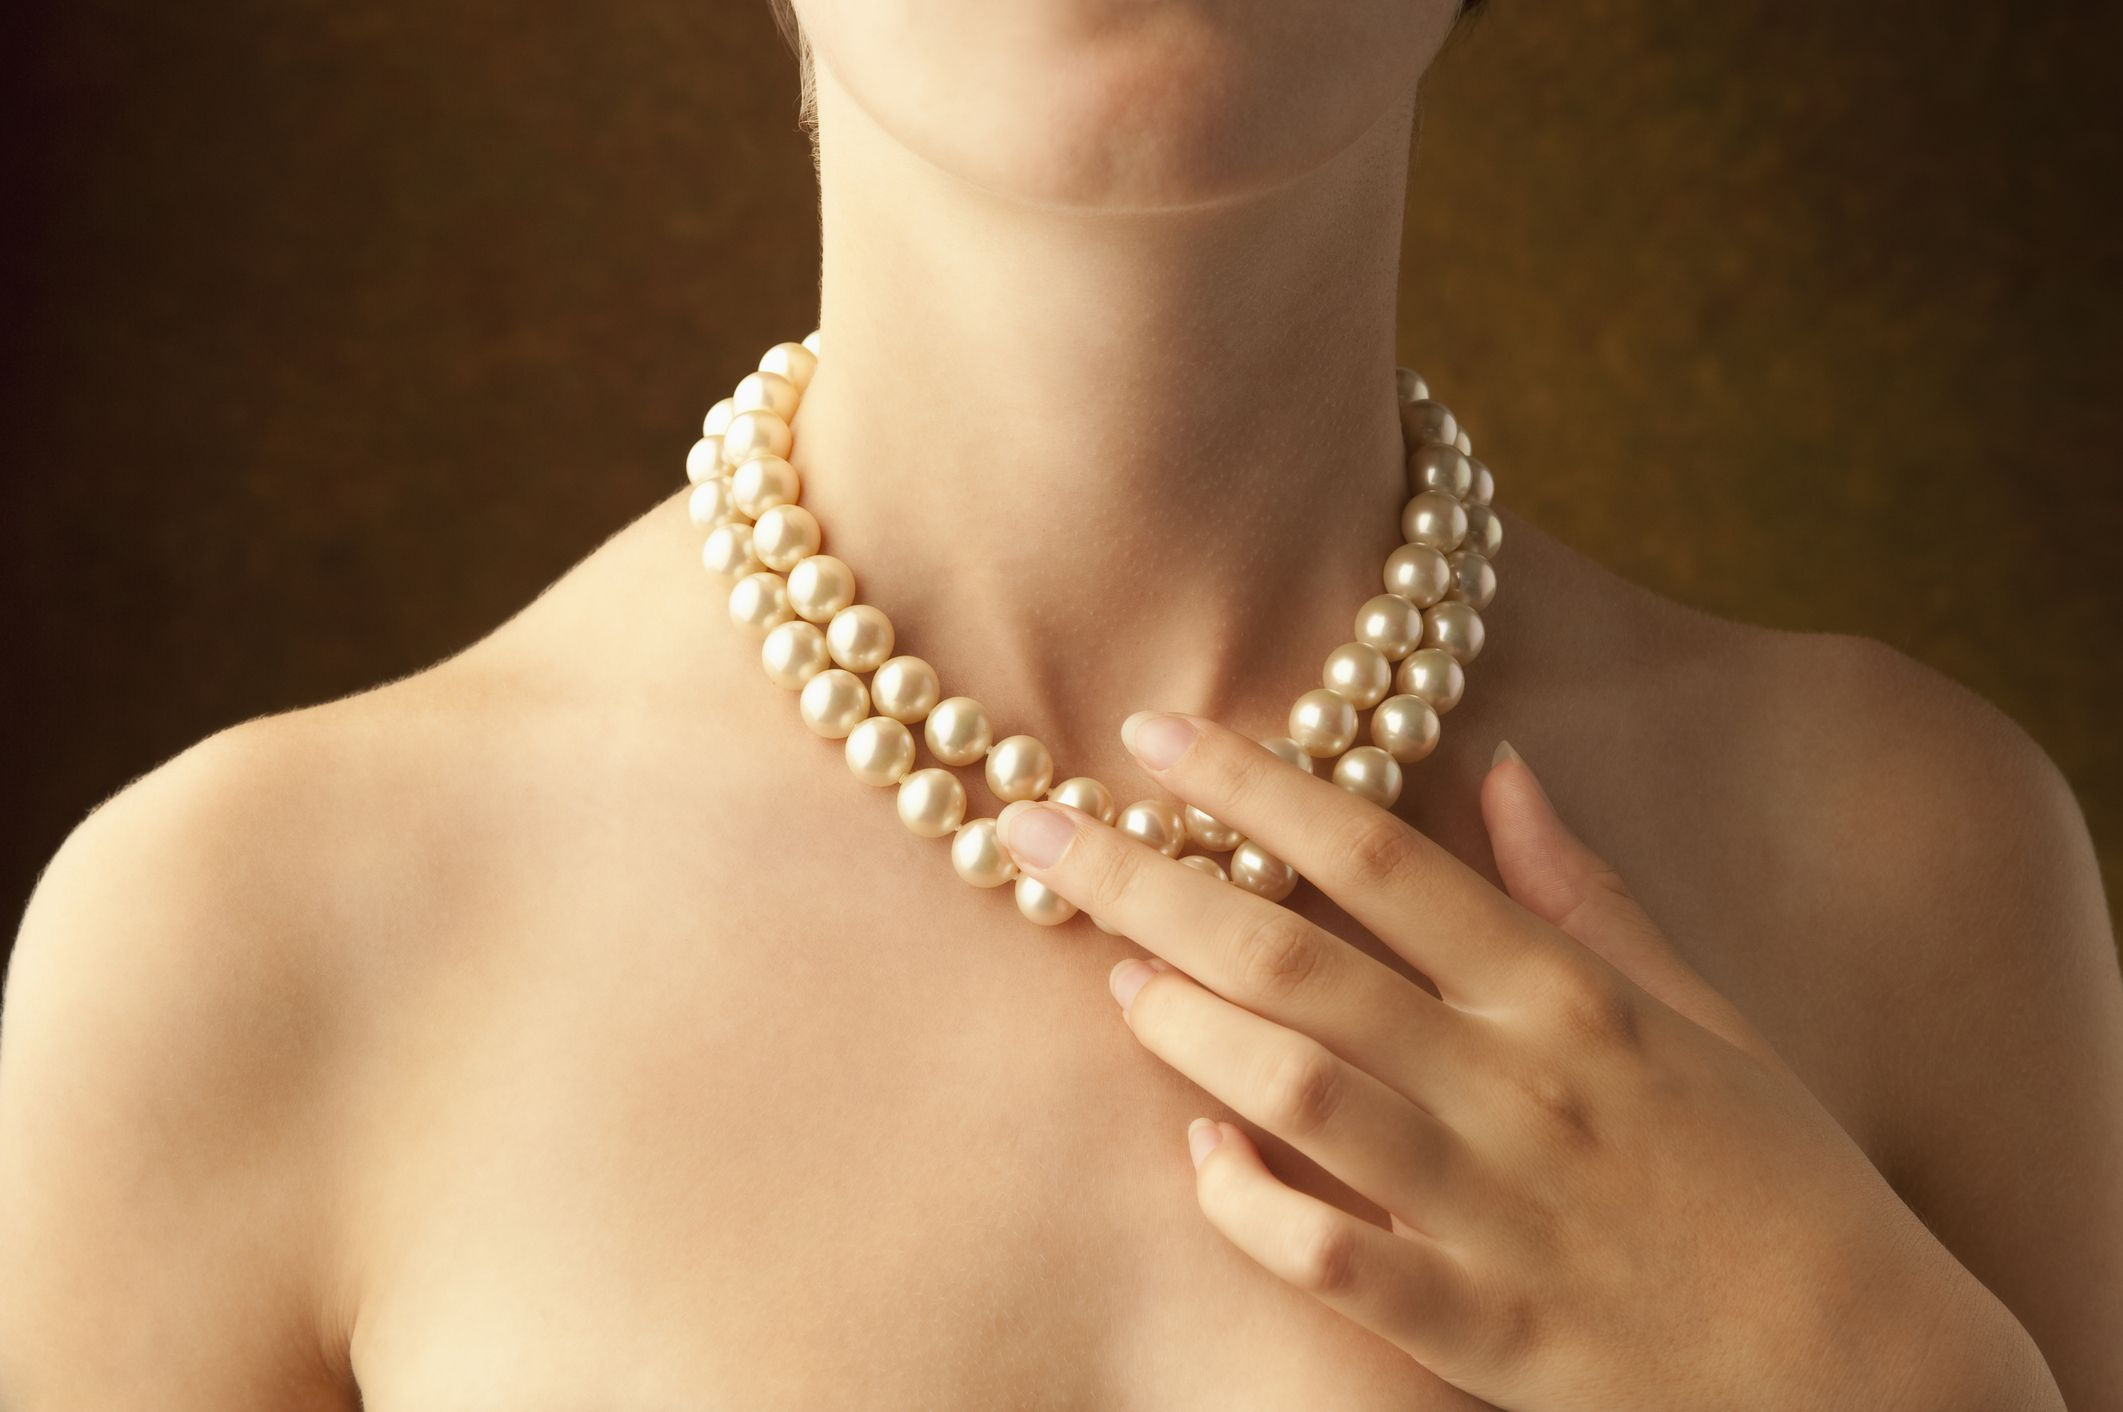 book south necklace autore scale false tiffany boodles blue editor wisdom subsampling crop pearls jewellery pearl the article upscale golden sea